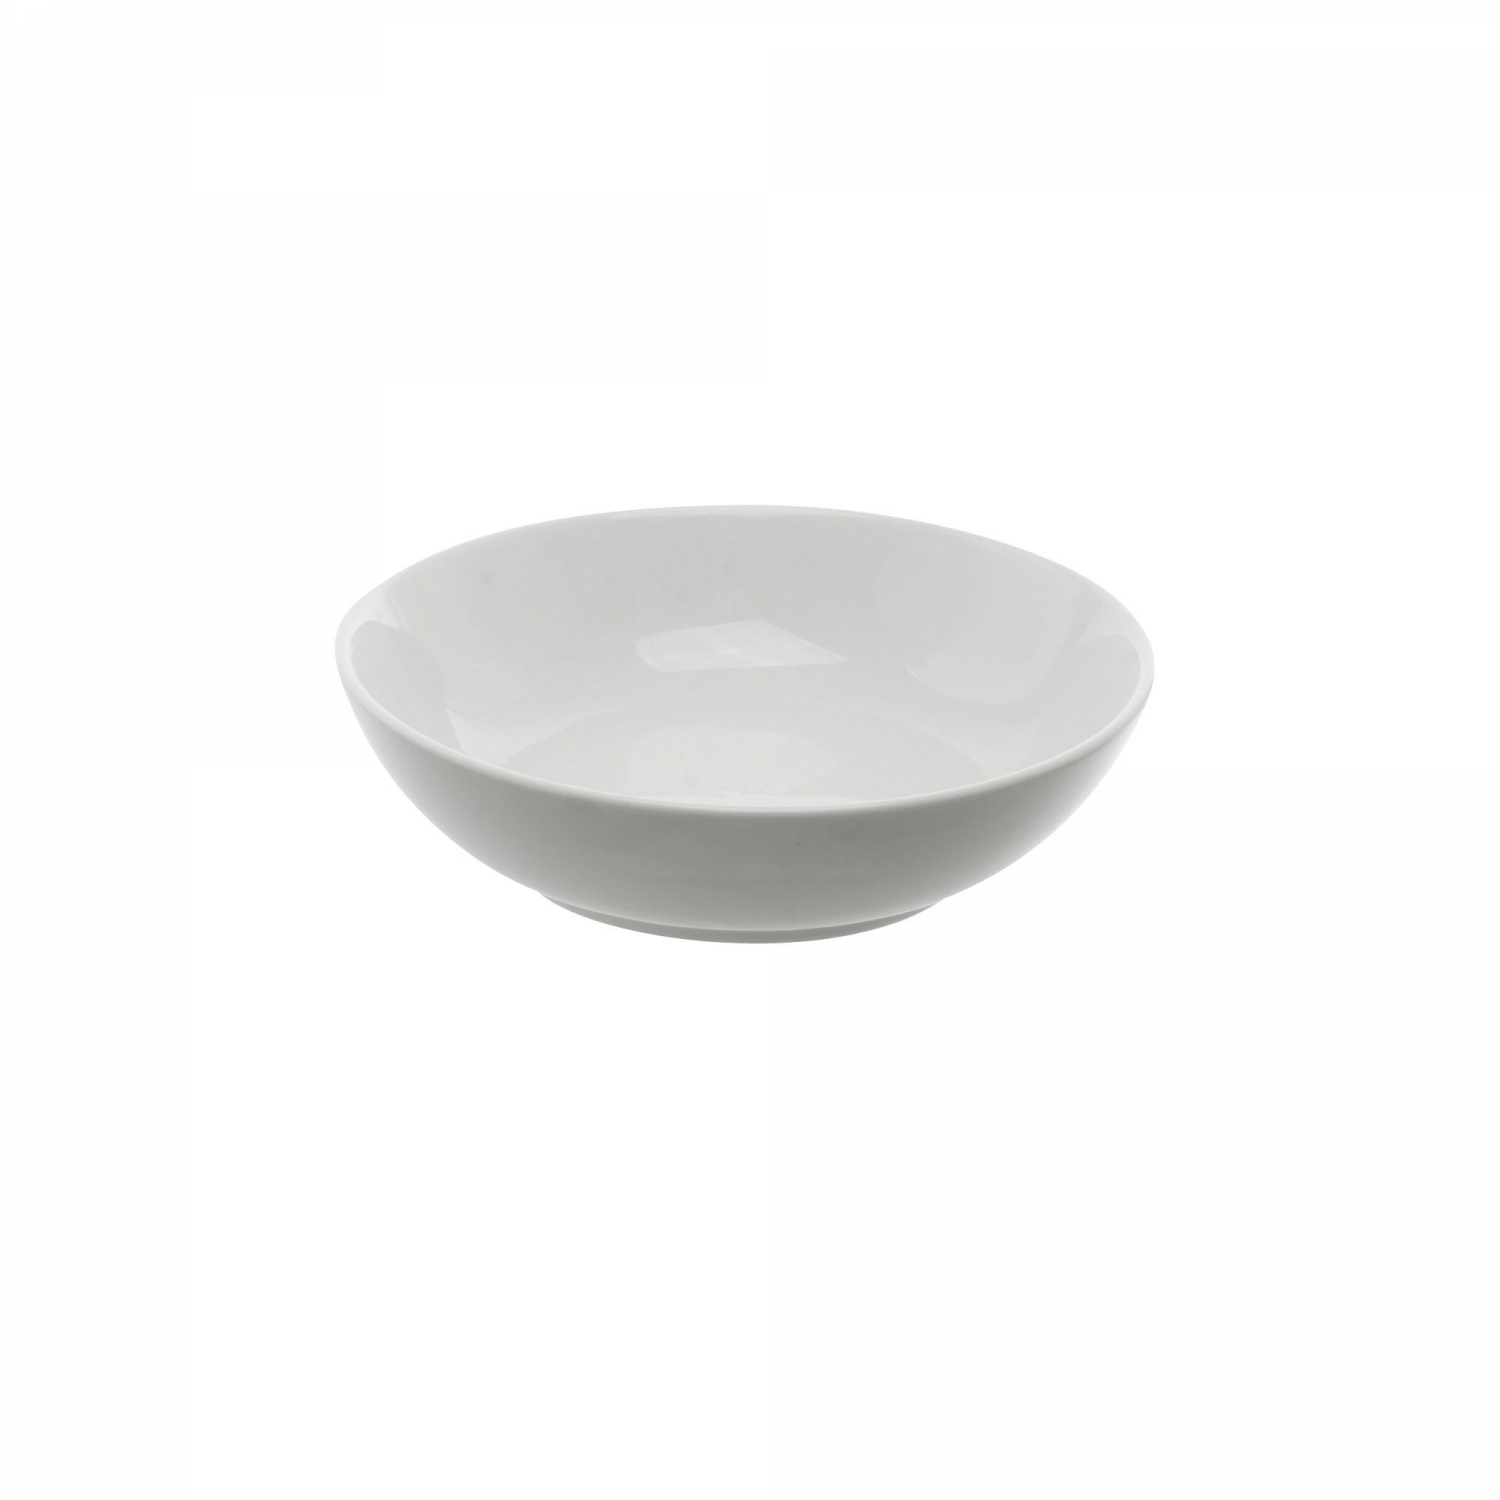 10 Strawberry Street WTR-5SAU Whittier Sauce Dish 7 oz.